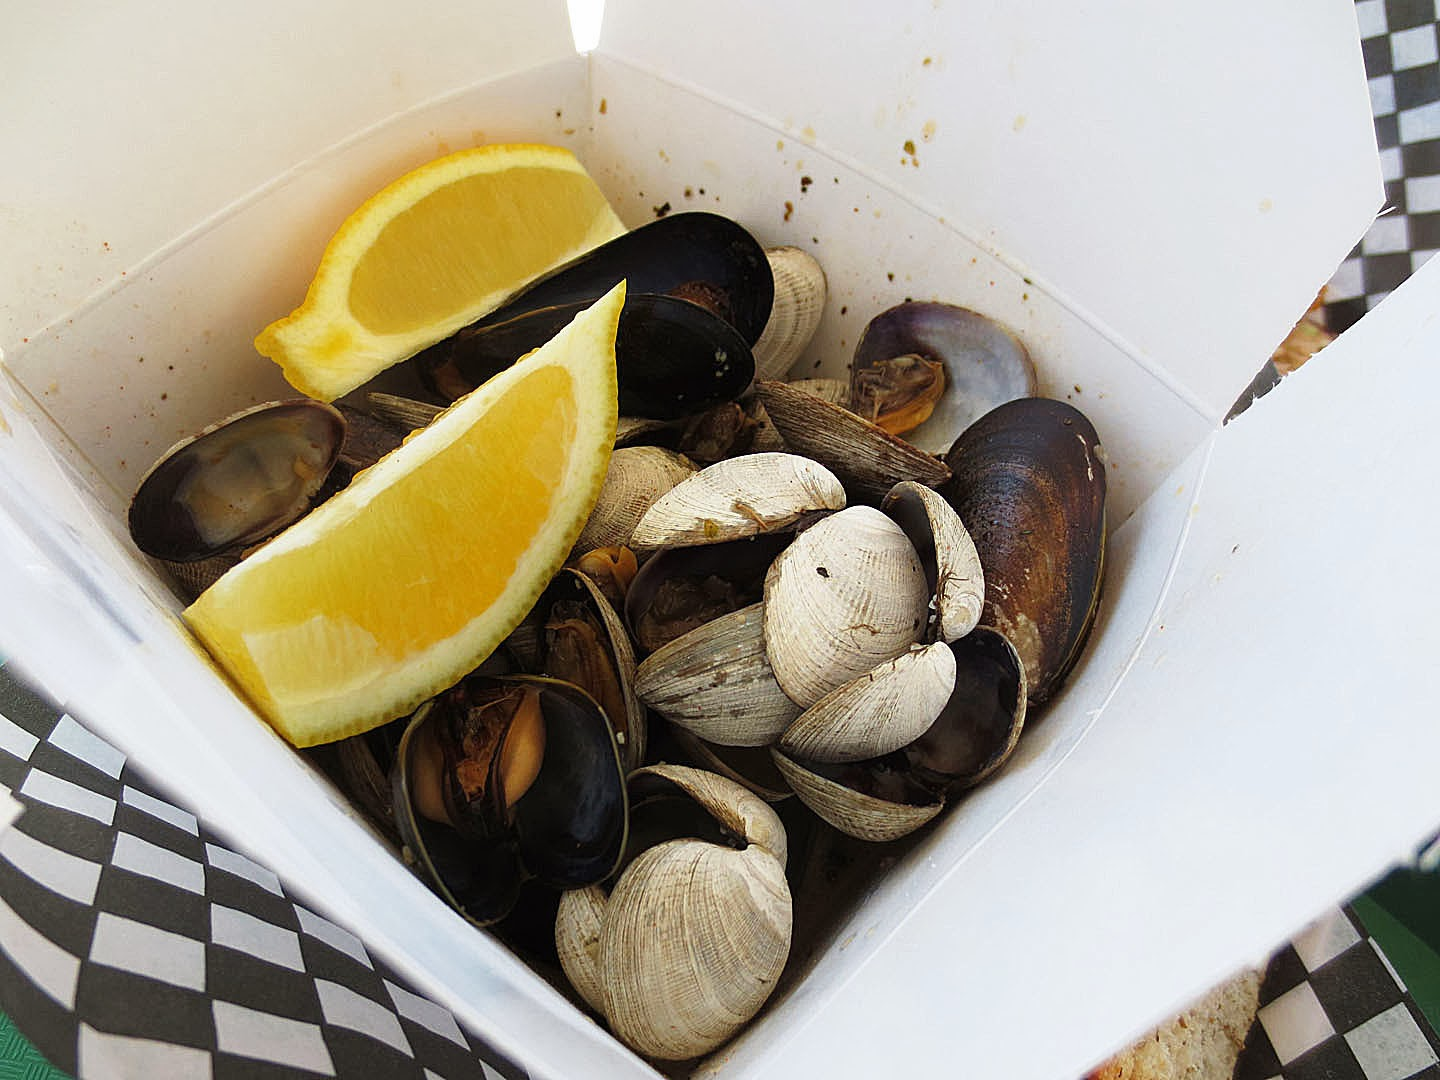 Steamed clams and mussels in garlic butter sauce